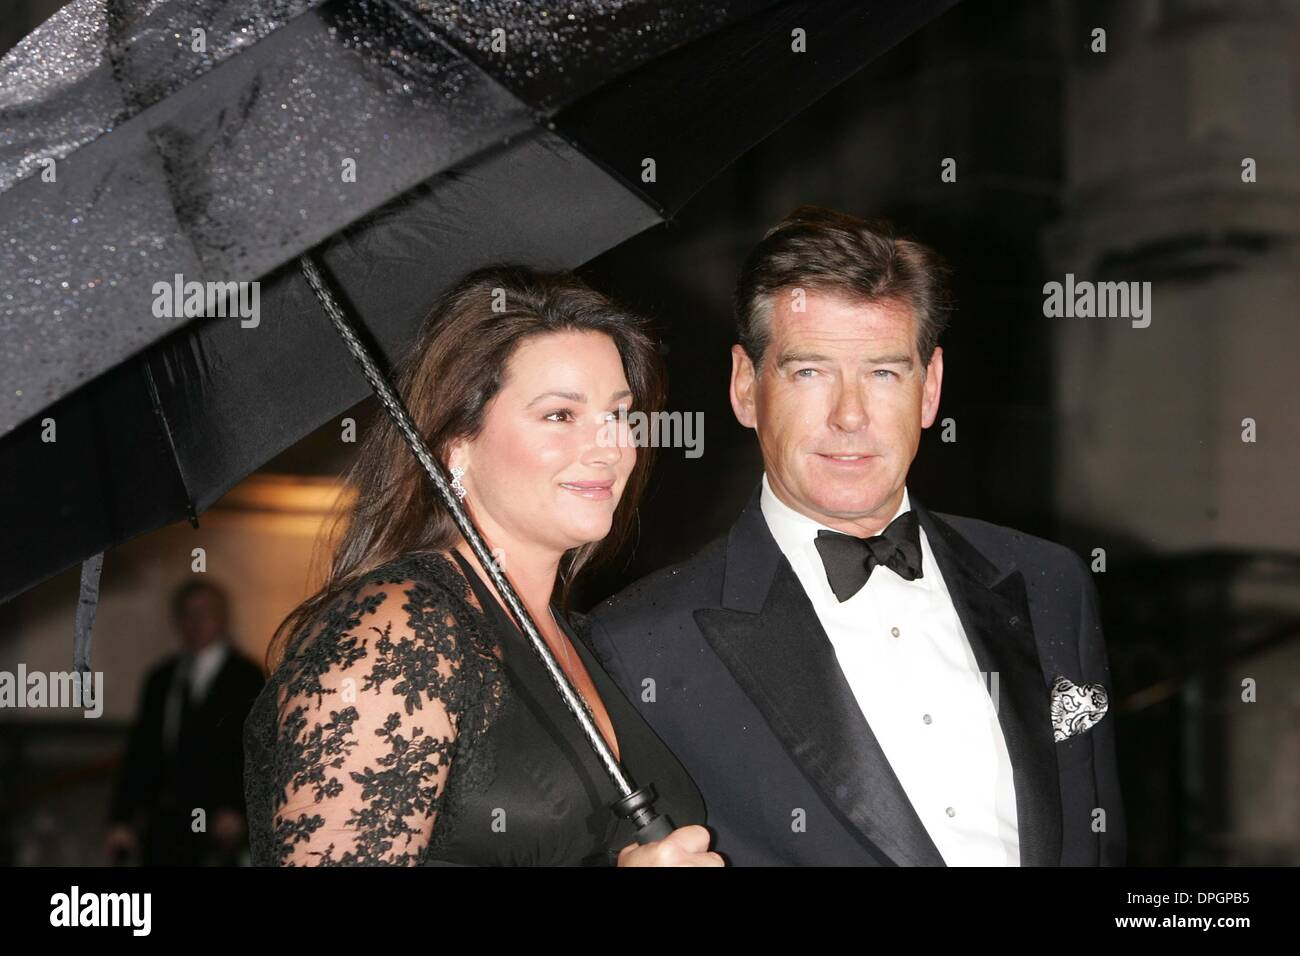 Mar. 24, 2006 - New York, New York, U.S. - ELTON JOHN CELEBRATES HIS 60TH BIRTHDAY.ST. JOHN THE DIVINE CATHEDRAL  03-24-2007.       2007..PIERCE BROSNAN AND WIFE.K52313RM(Credit Image: © Rick Mackler/Globe Photos/ZUMAPRESS.com) - Stock Image